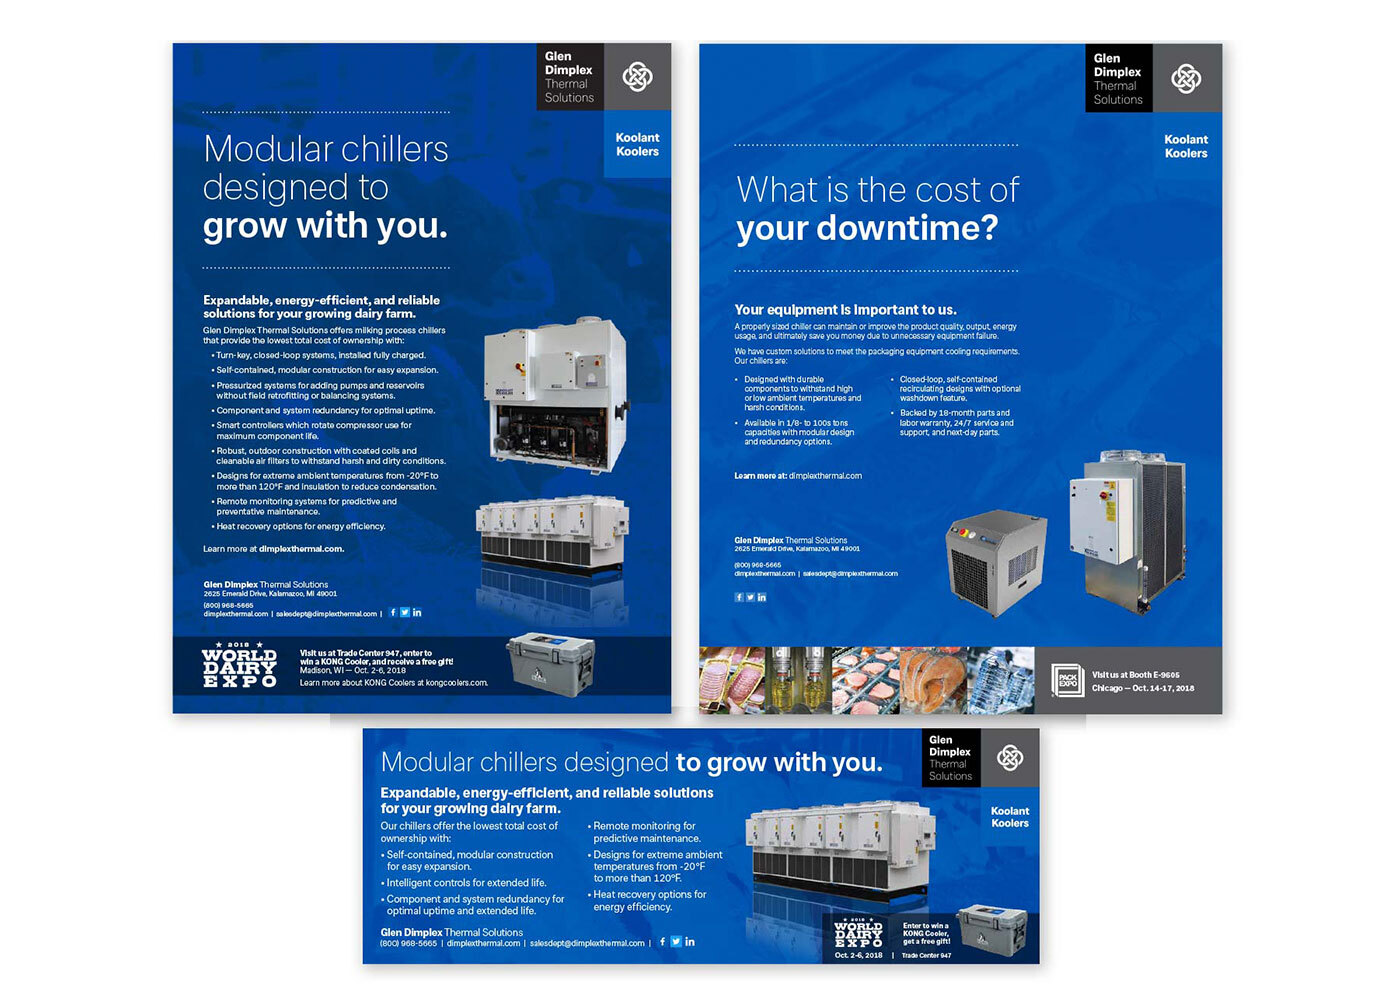 Glen Dimplex Thermal Solutions print ads - Print